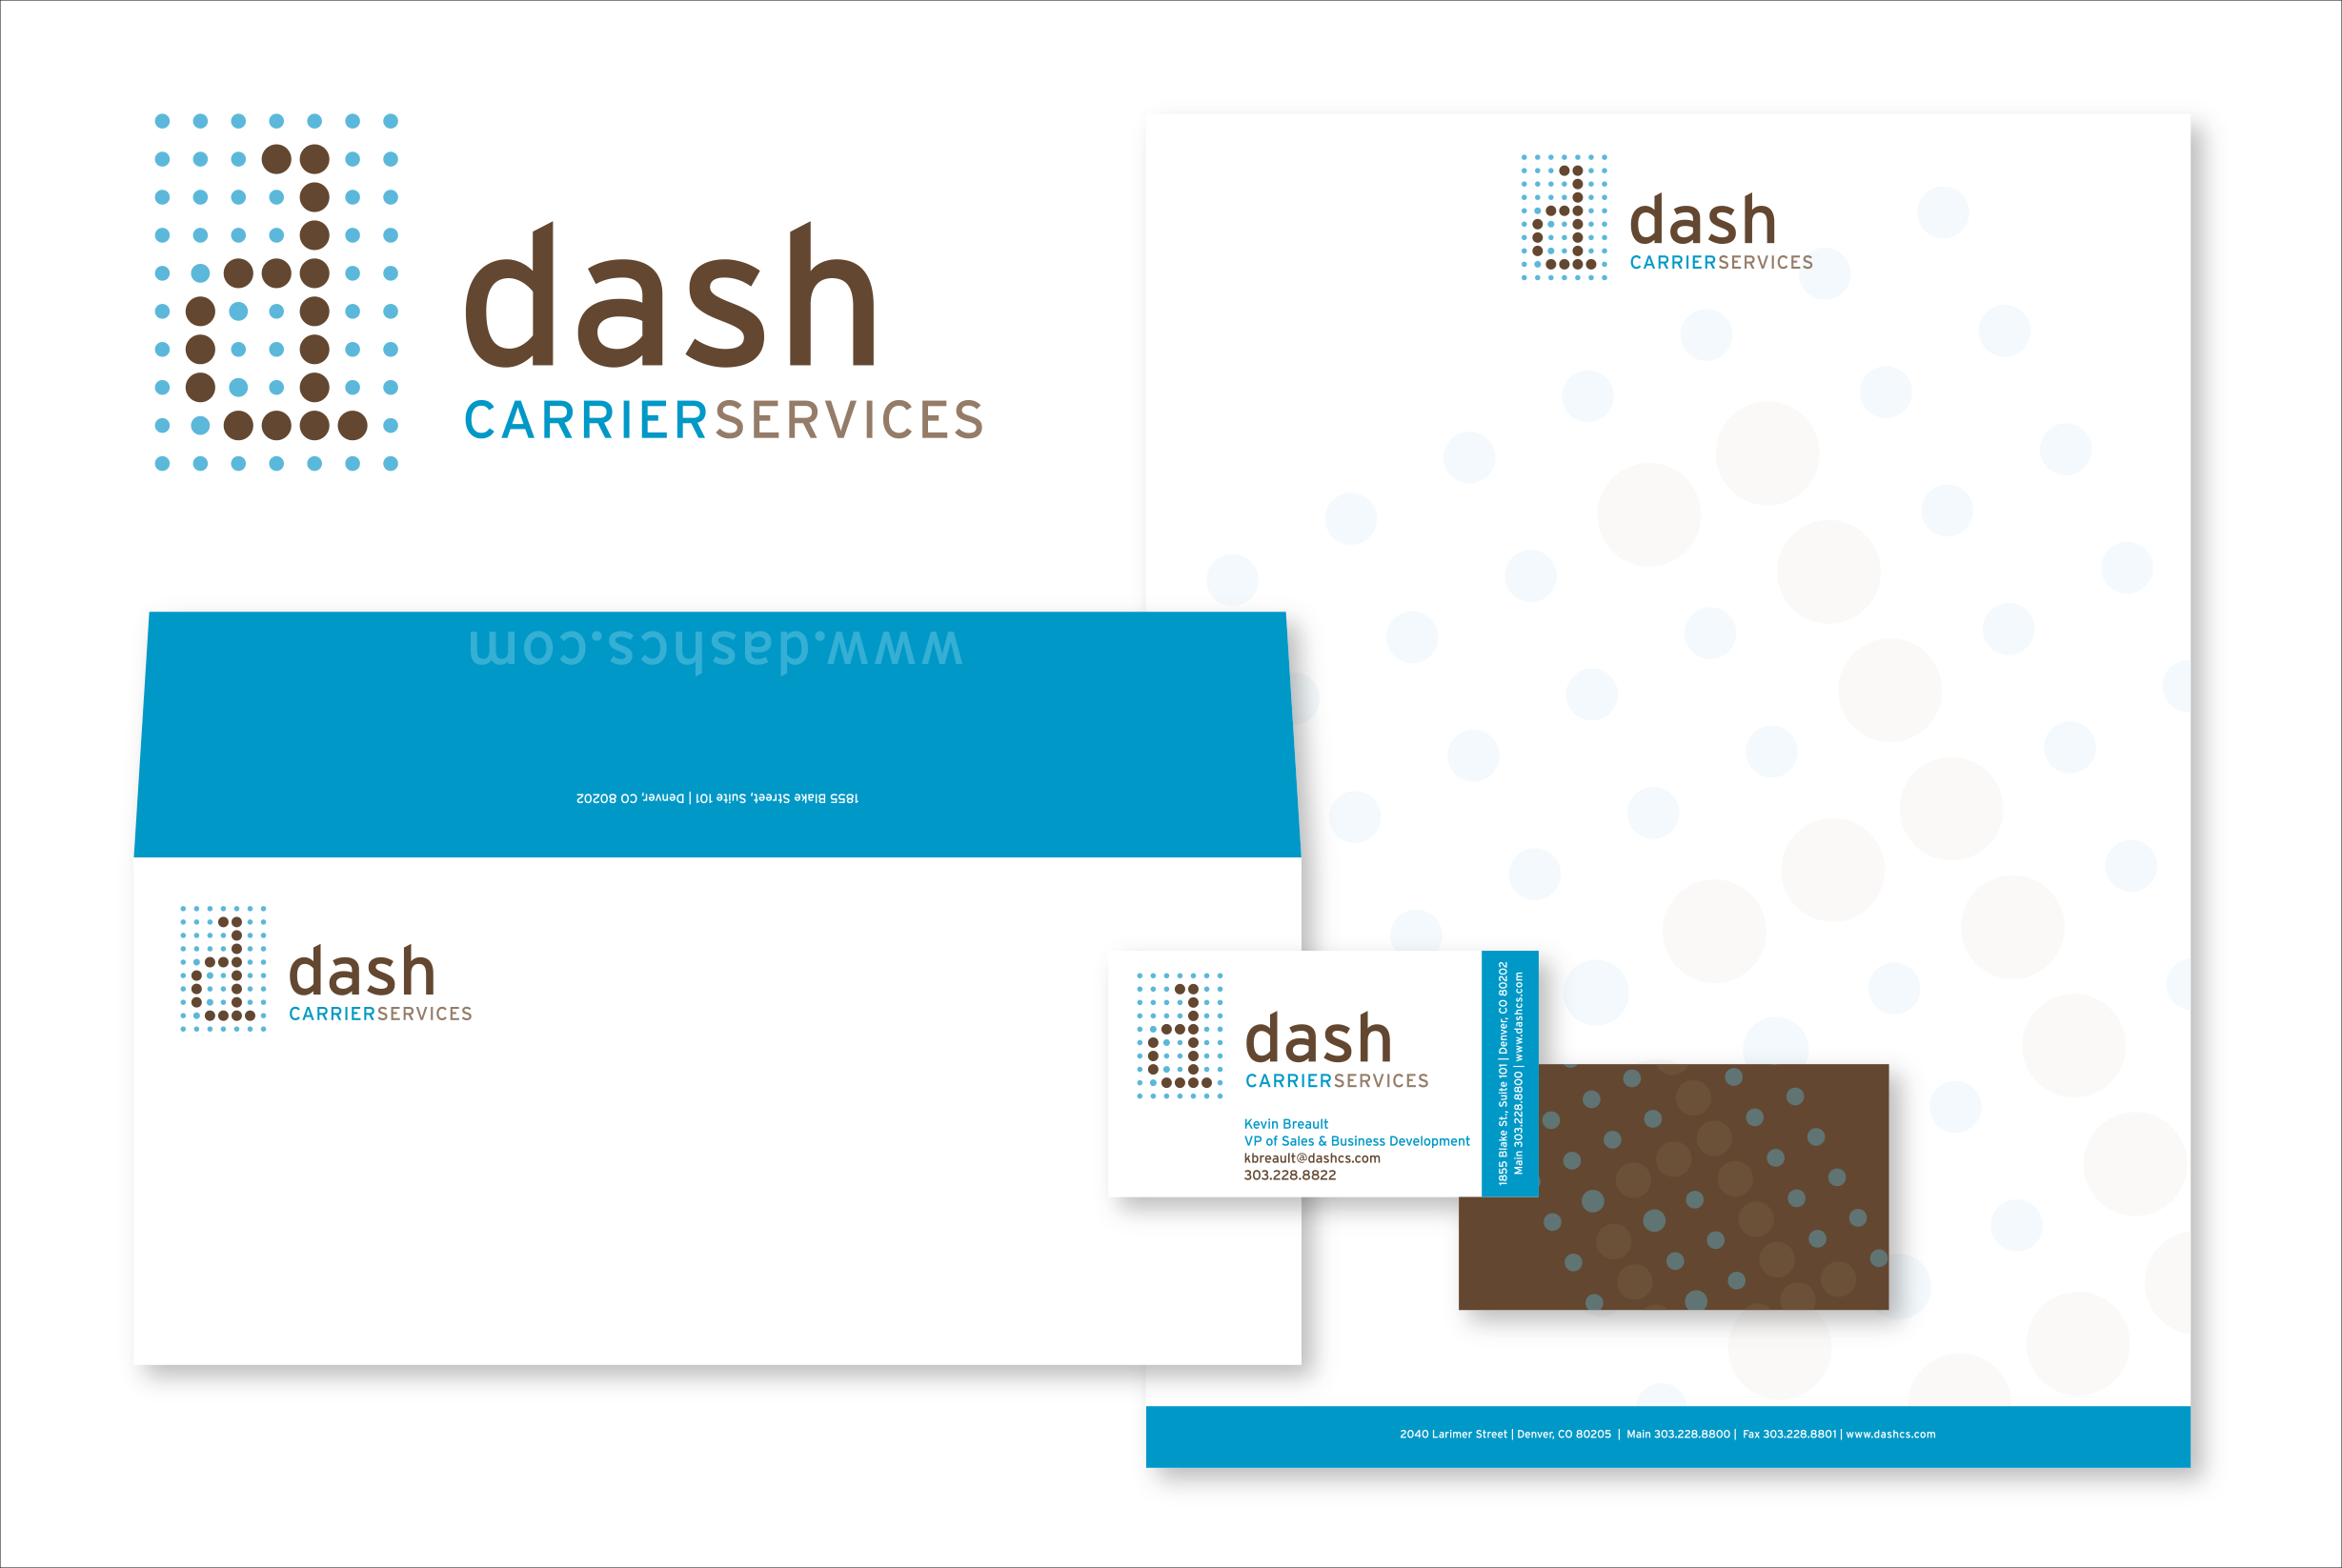 dash Carrier Services Identity and Stationery